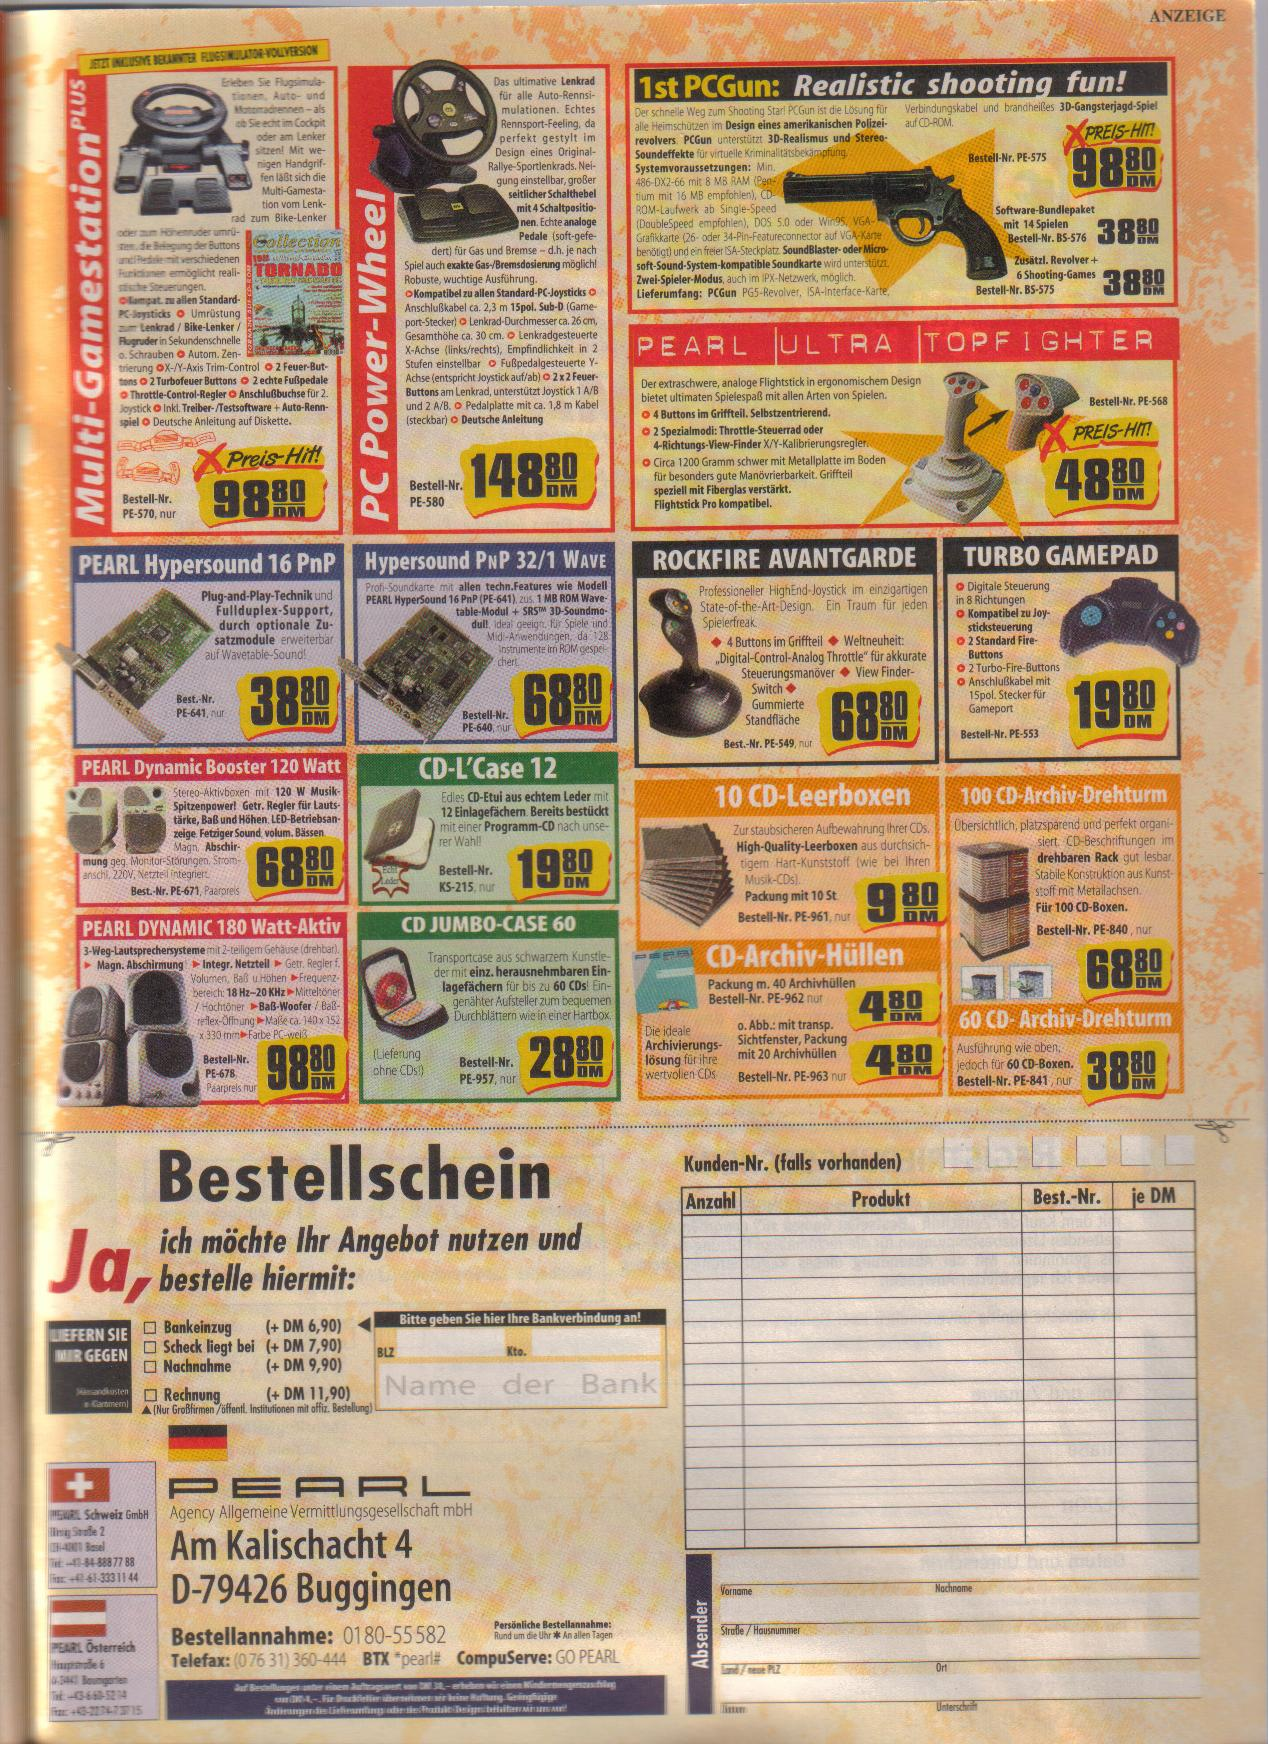 Dungeon Master II for PC (German, Best Seller Games) Page 49